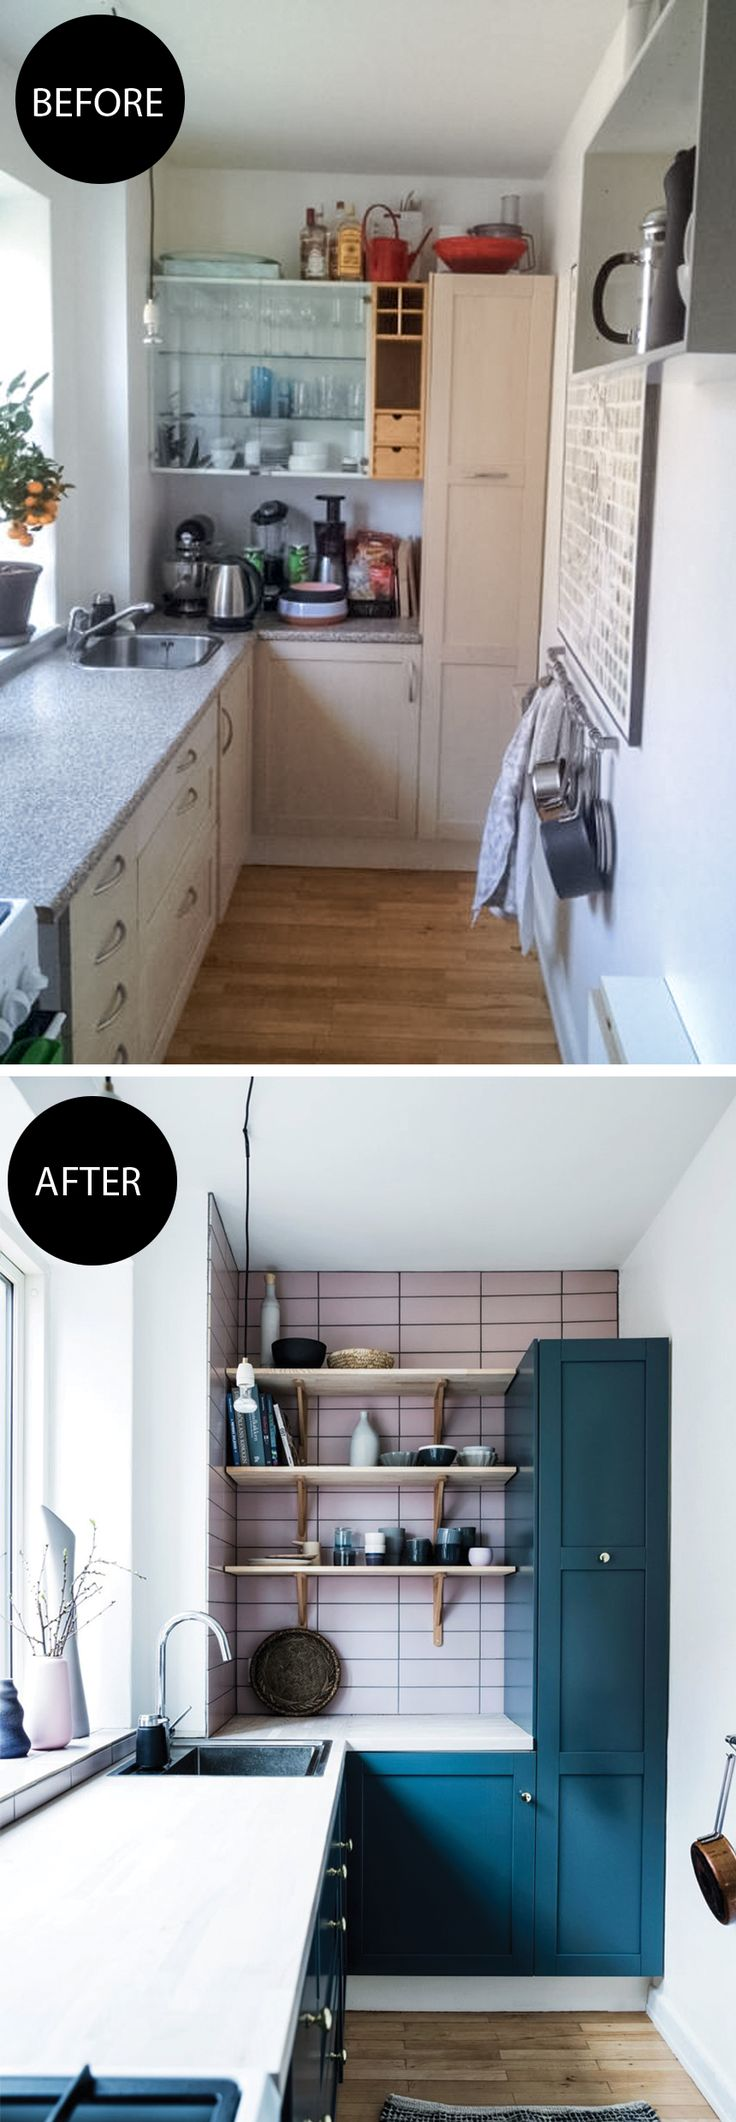 Small space kitchen remodelling on a budget: New colorful cabinets and wall tiles and pretty open storage. See the makeover here!